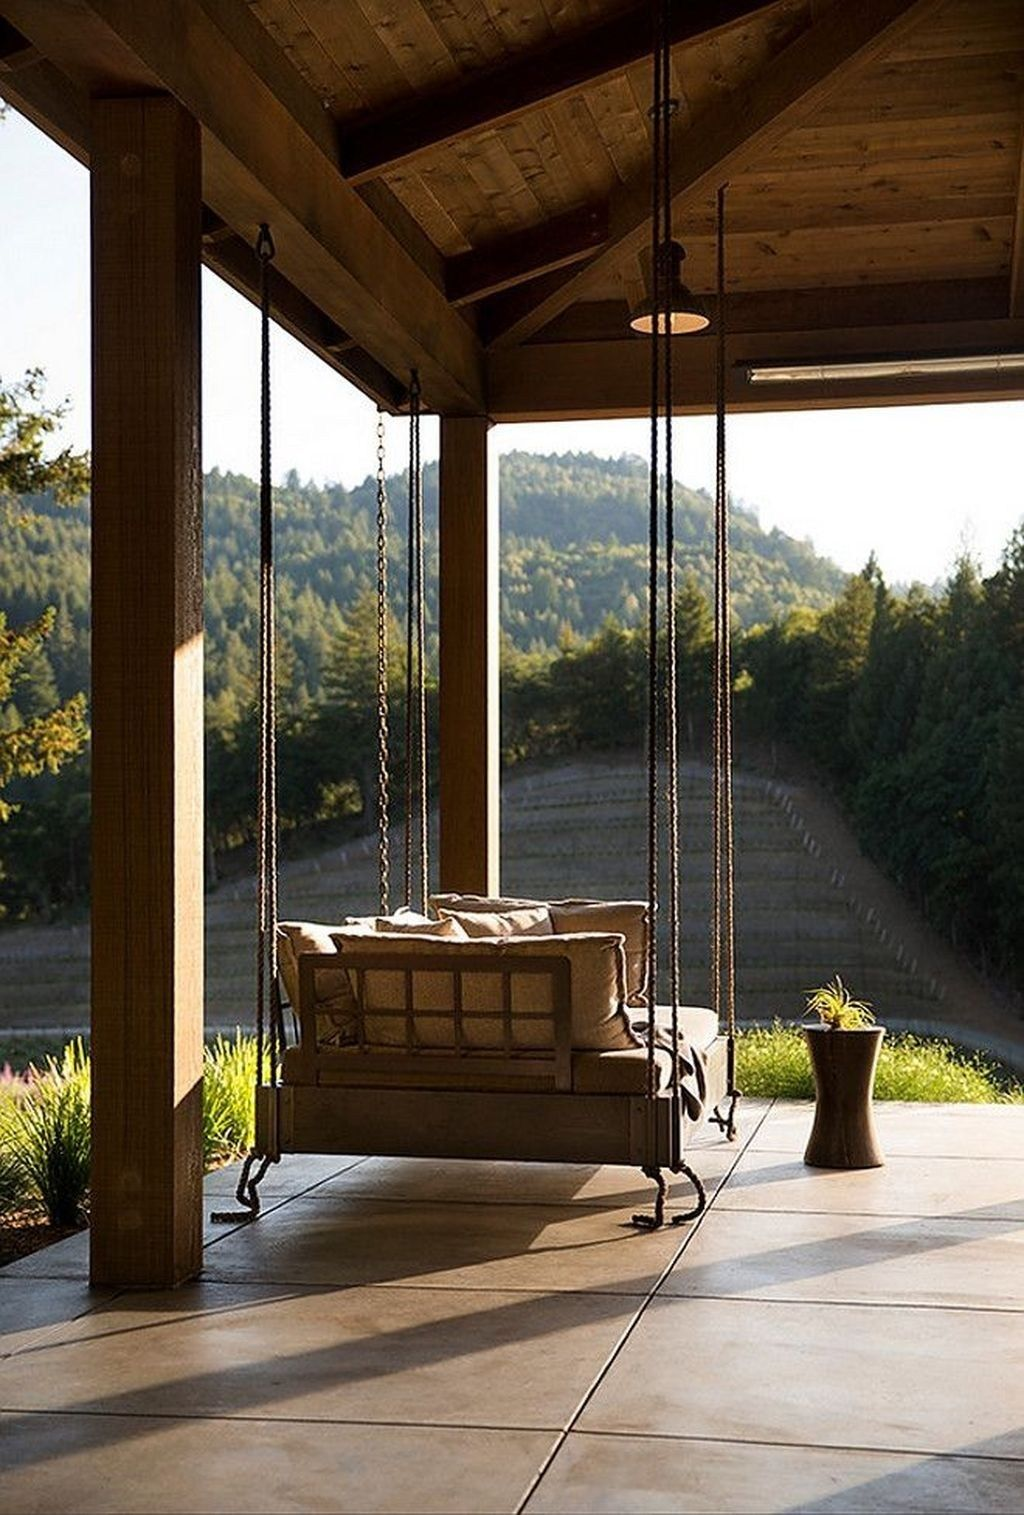 50 Inspiring Rustic Porch Swing Ideas To Get Comfort In Relaxing #rusticporchideas